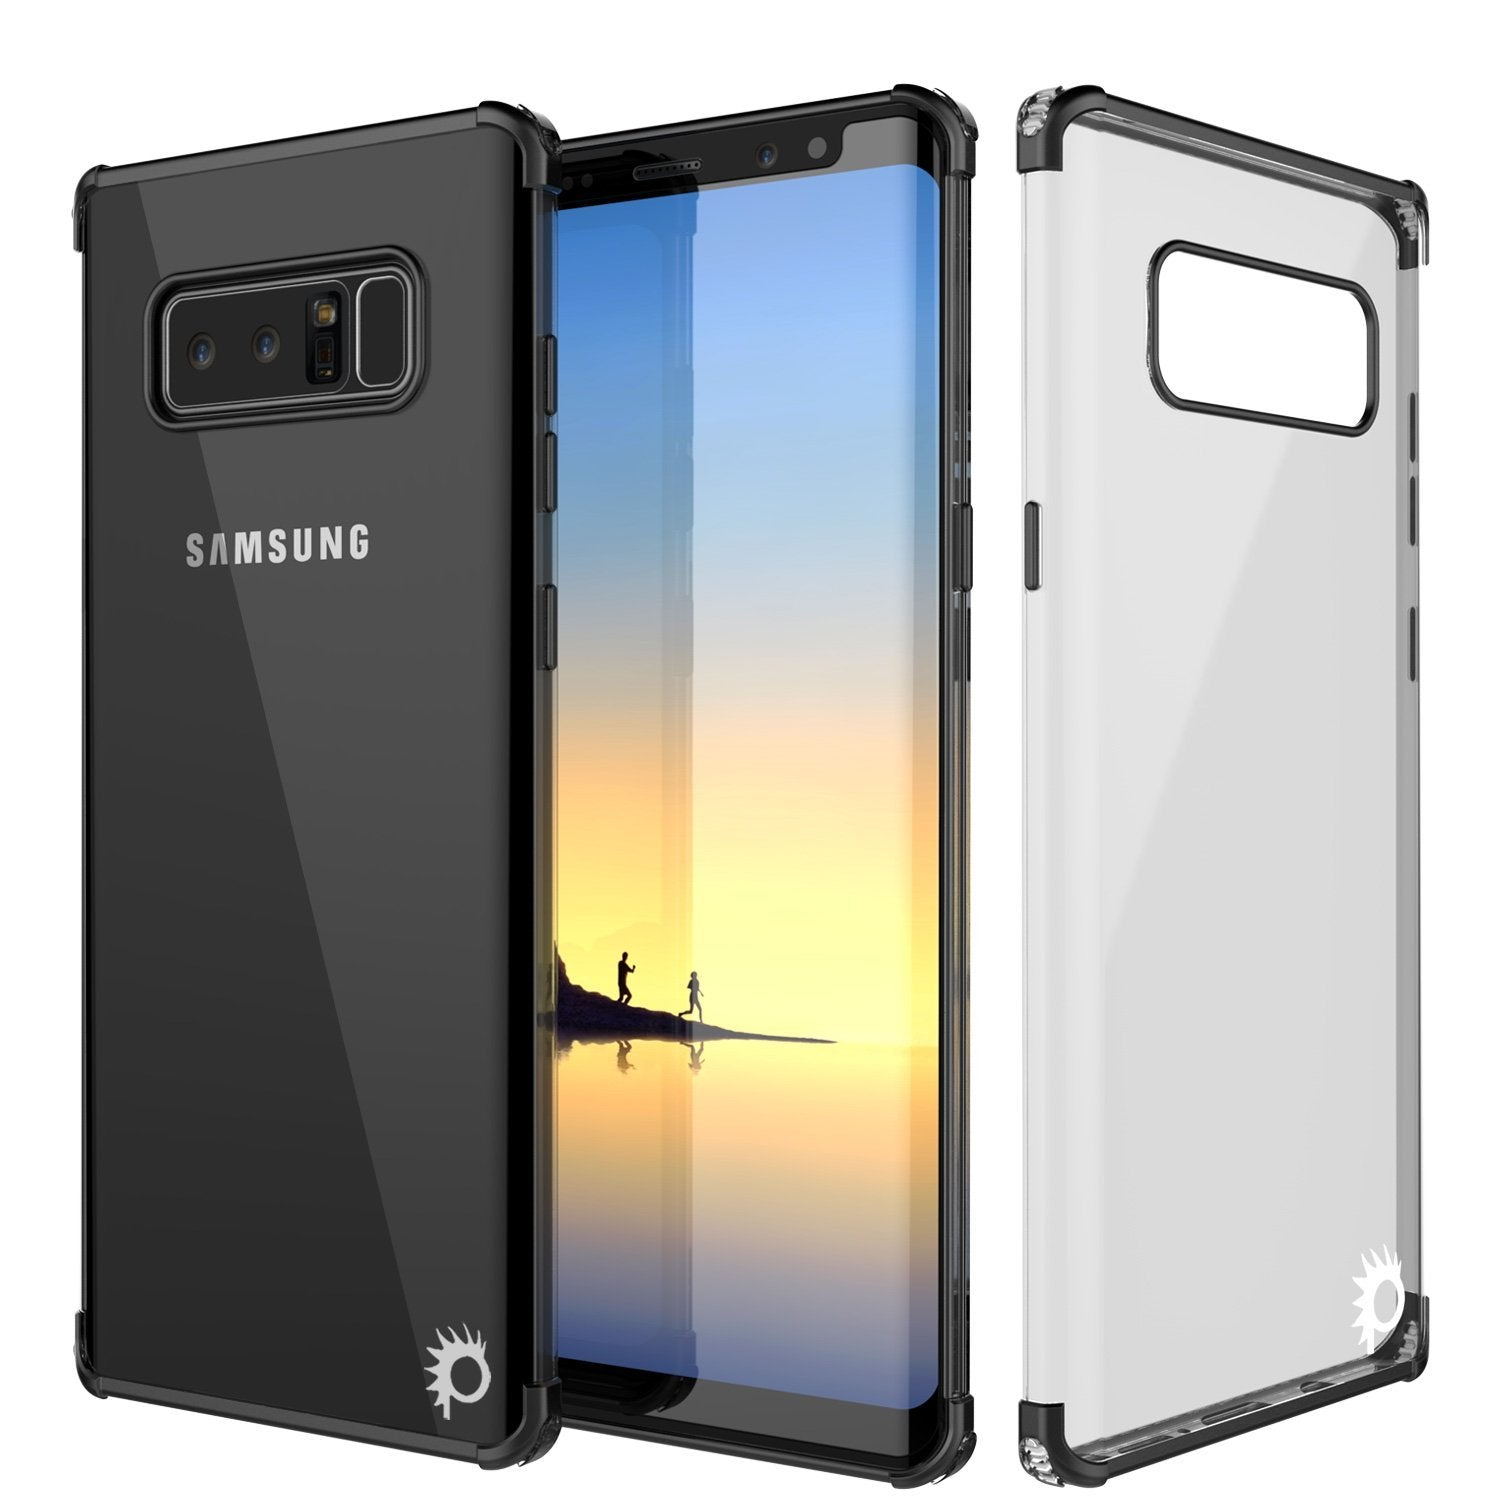 Galaxy Note 8 Punkcase Slim-Fit Case W/ Screen Protector Cover [Black]